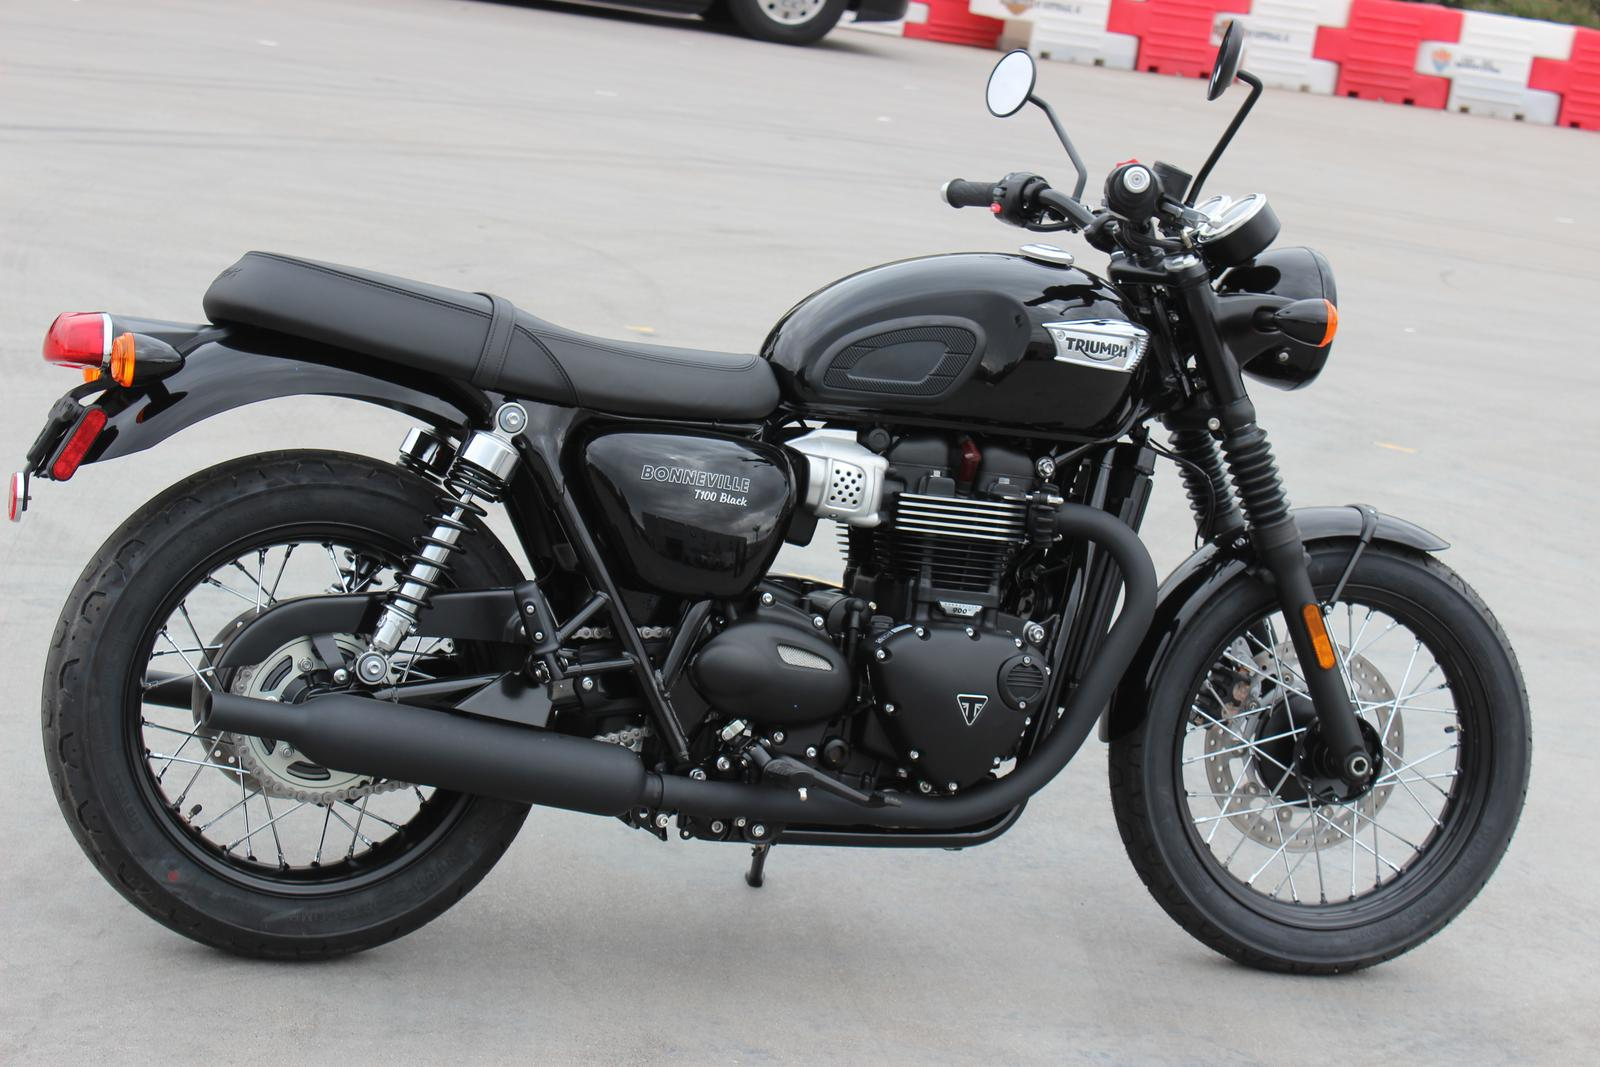 2019 Triumph Bonneville T100 Black For Sale In Scottsdale Az Go